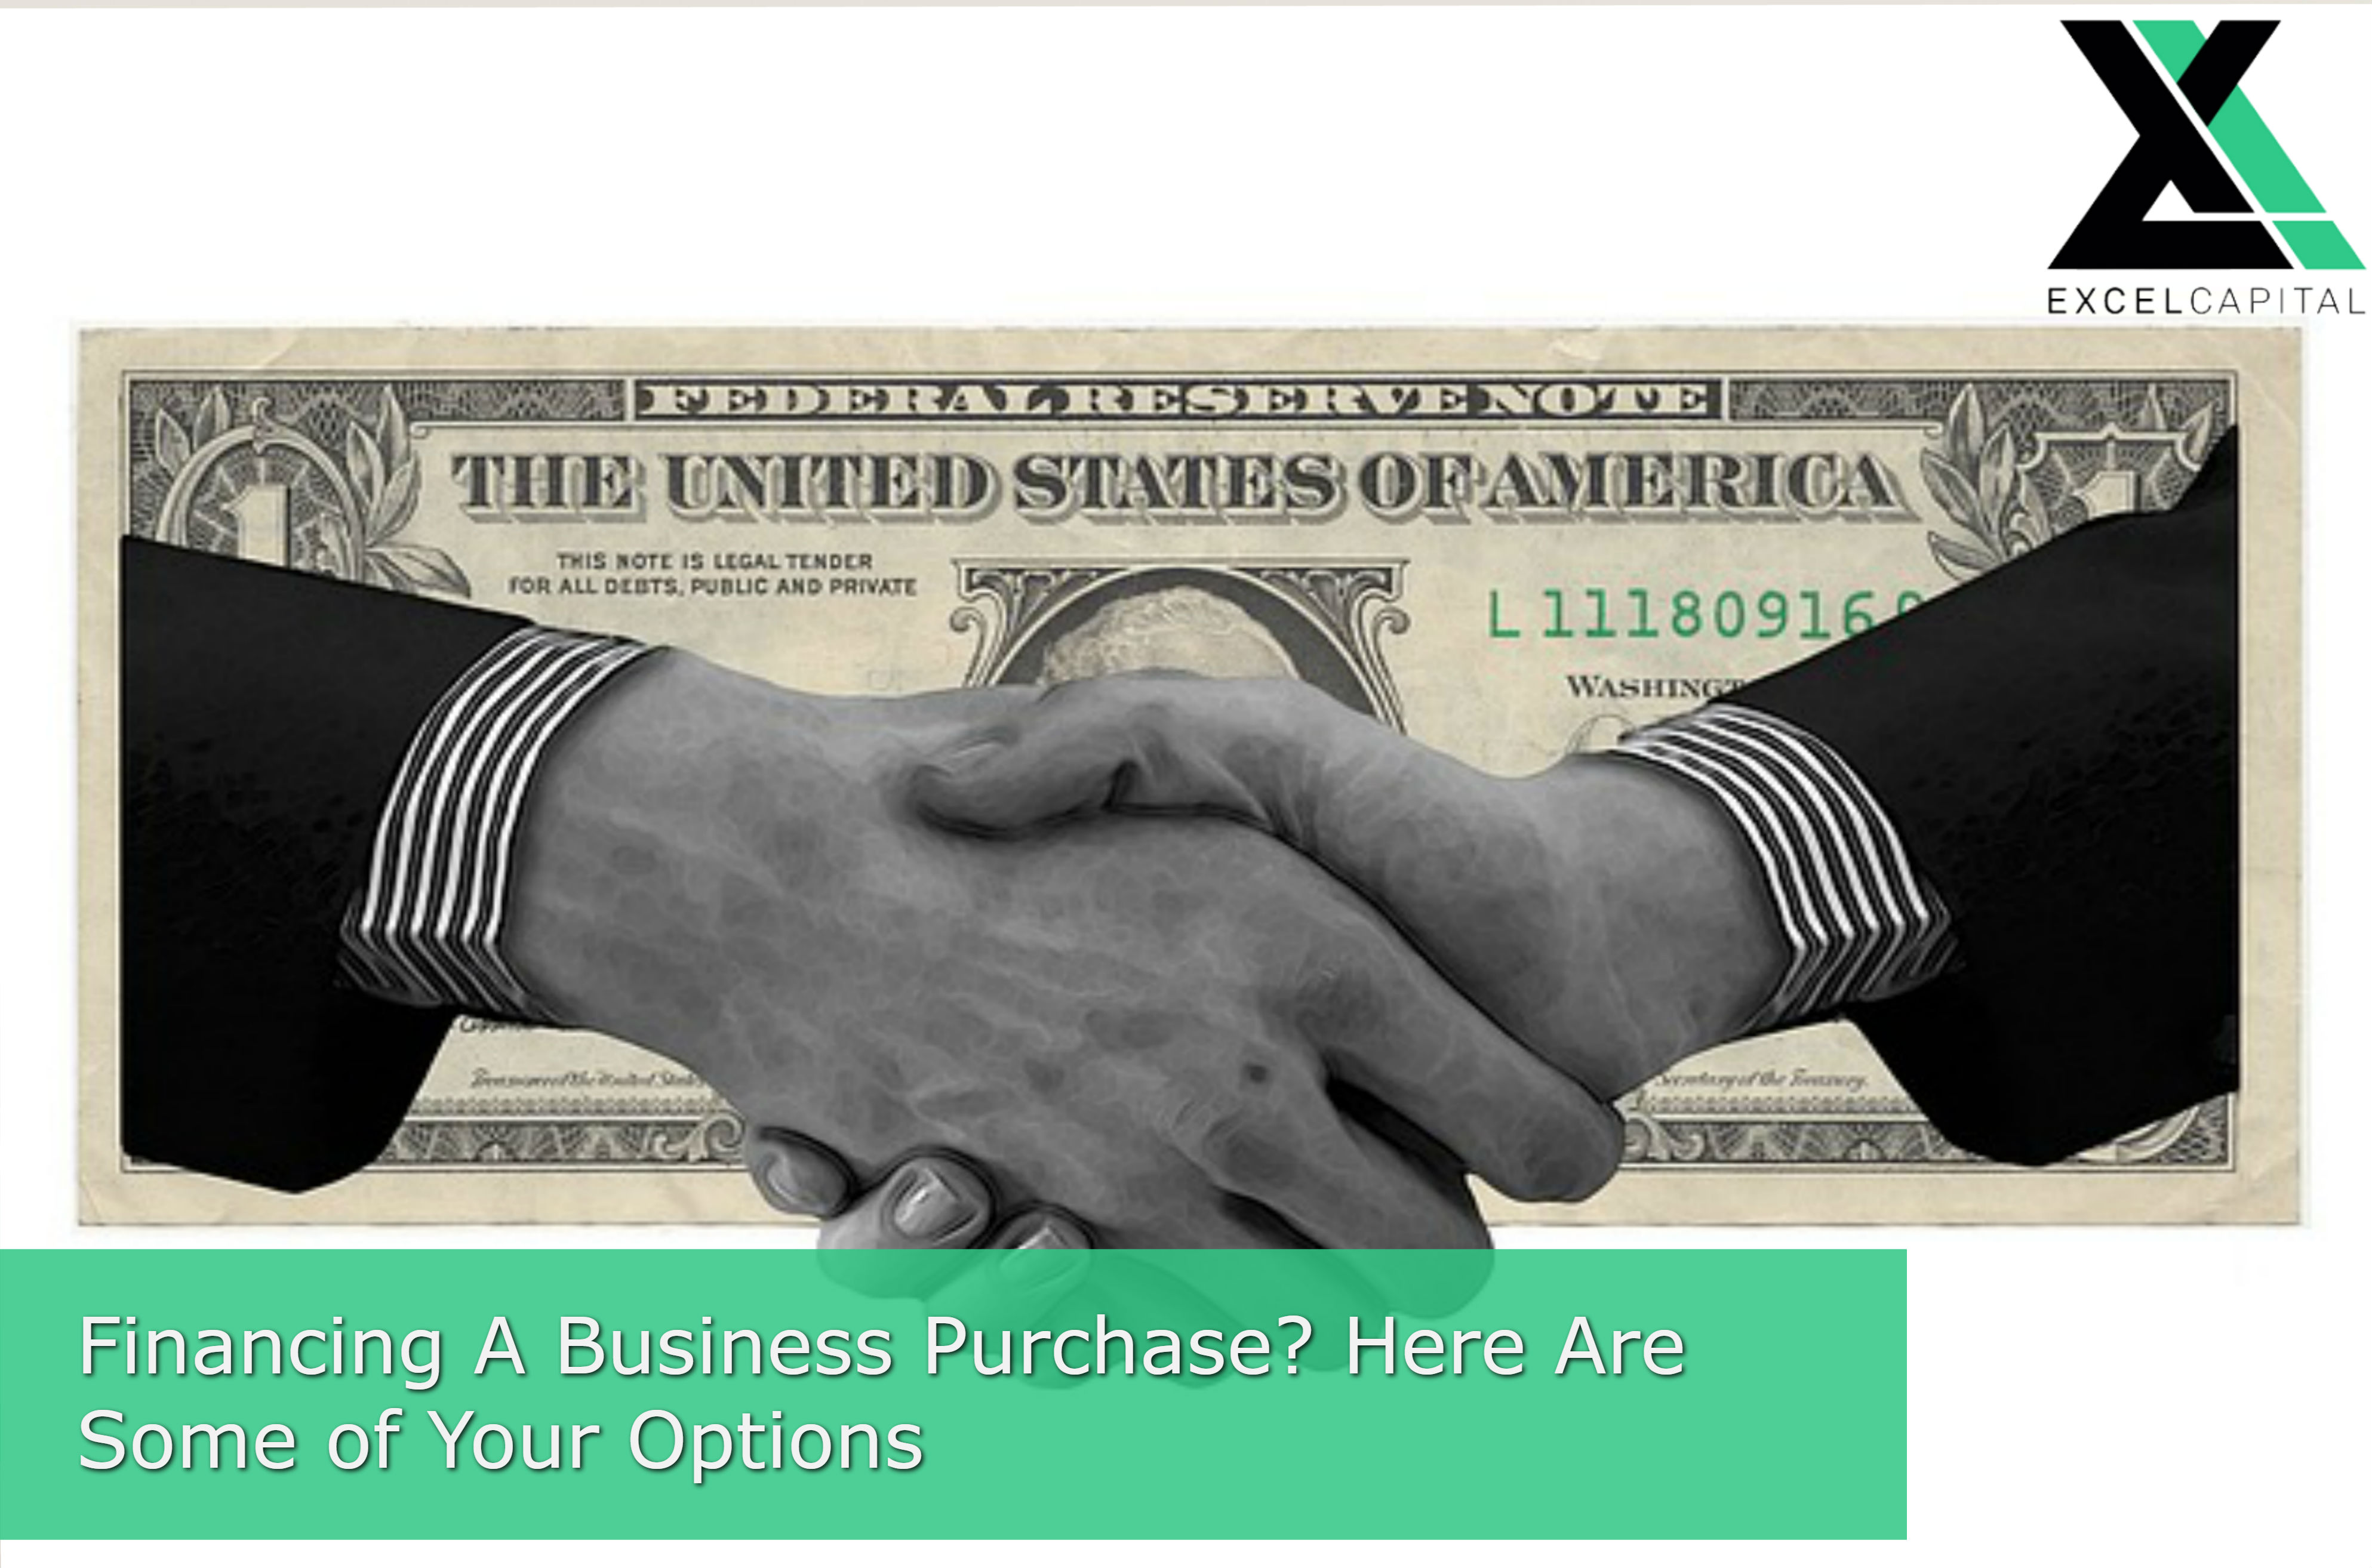 Financing A Business Purchase? Here Are Your Options